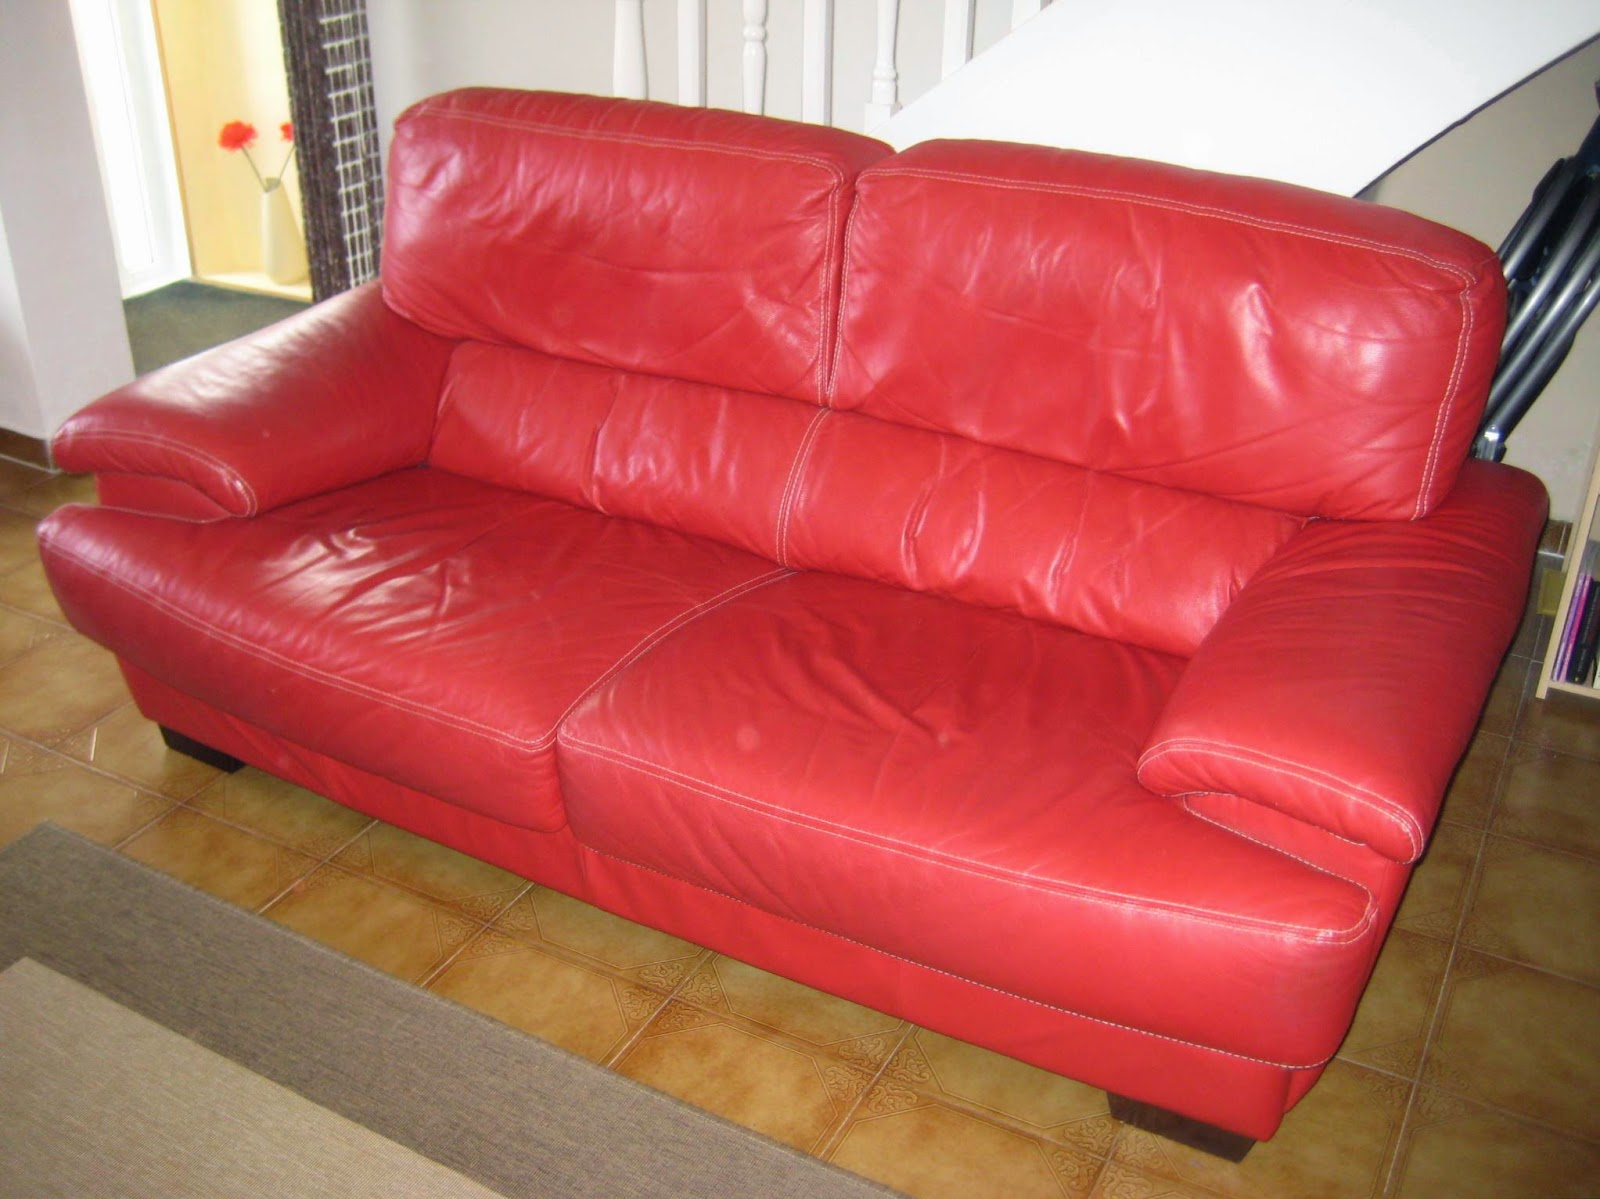 red sofas on sale walmart larkin sofa table digame for granfort leather